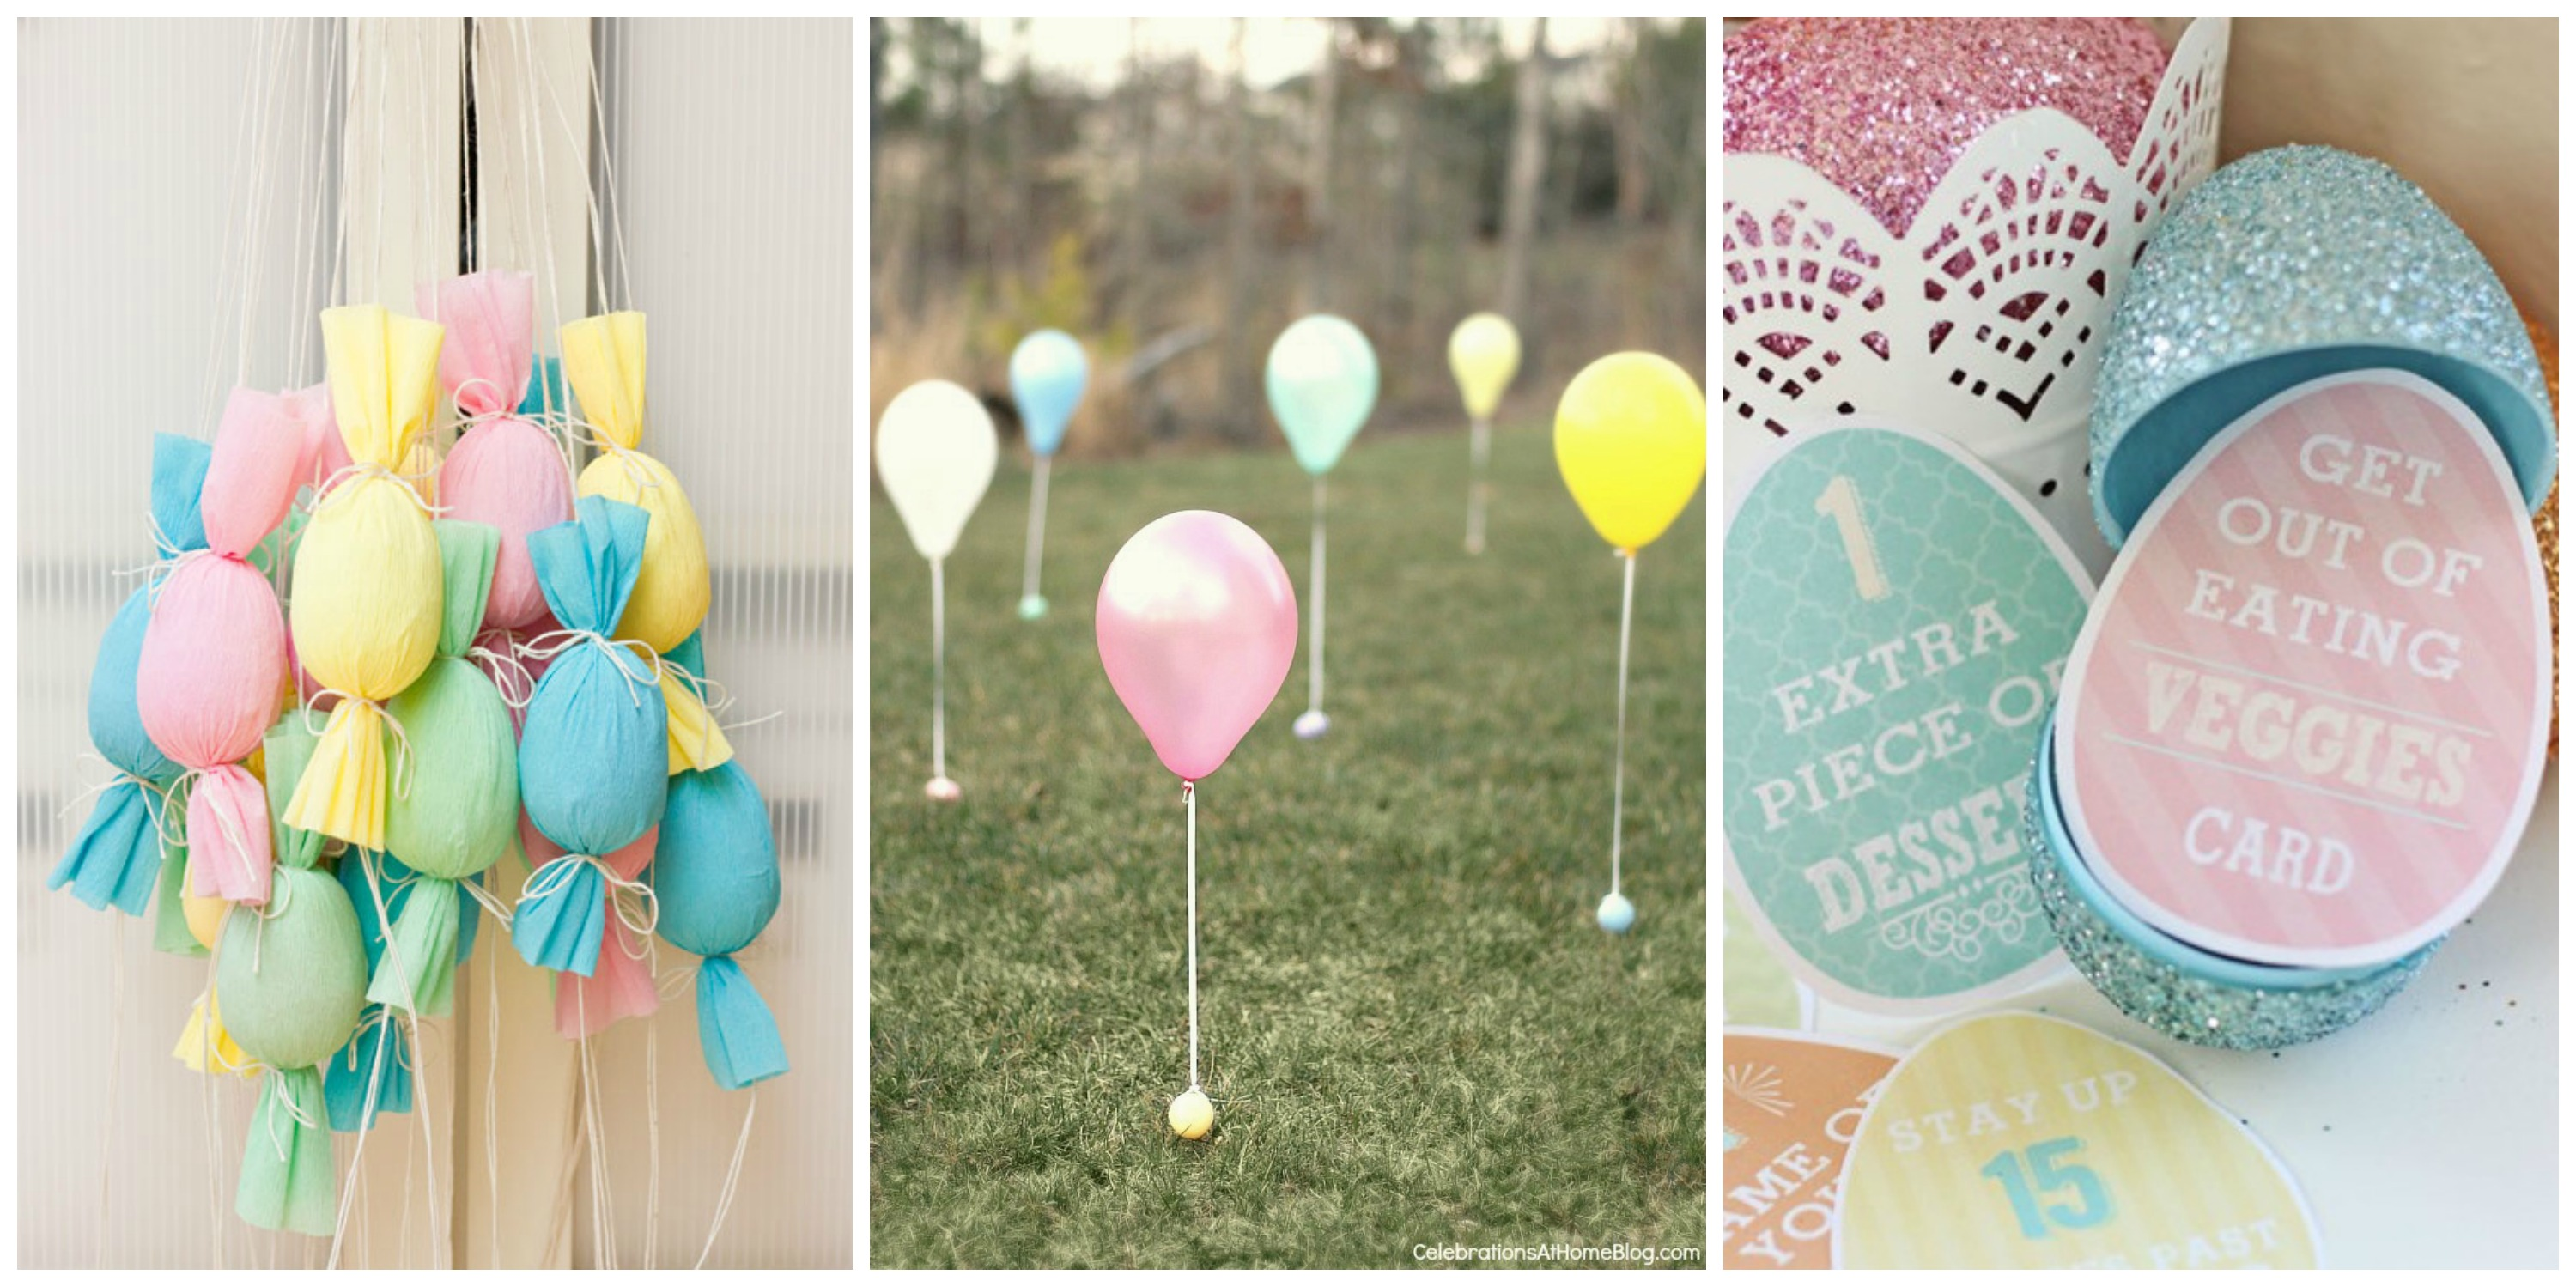 10 Fun Easter Egg Hunt Ideas For Kids